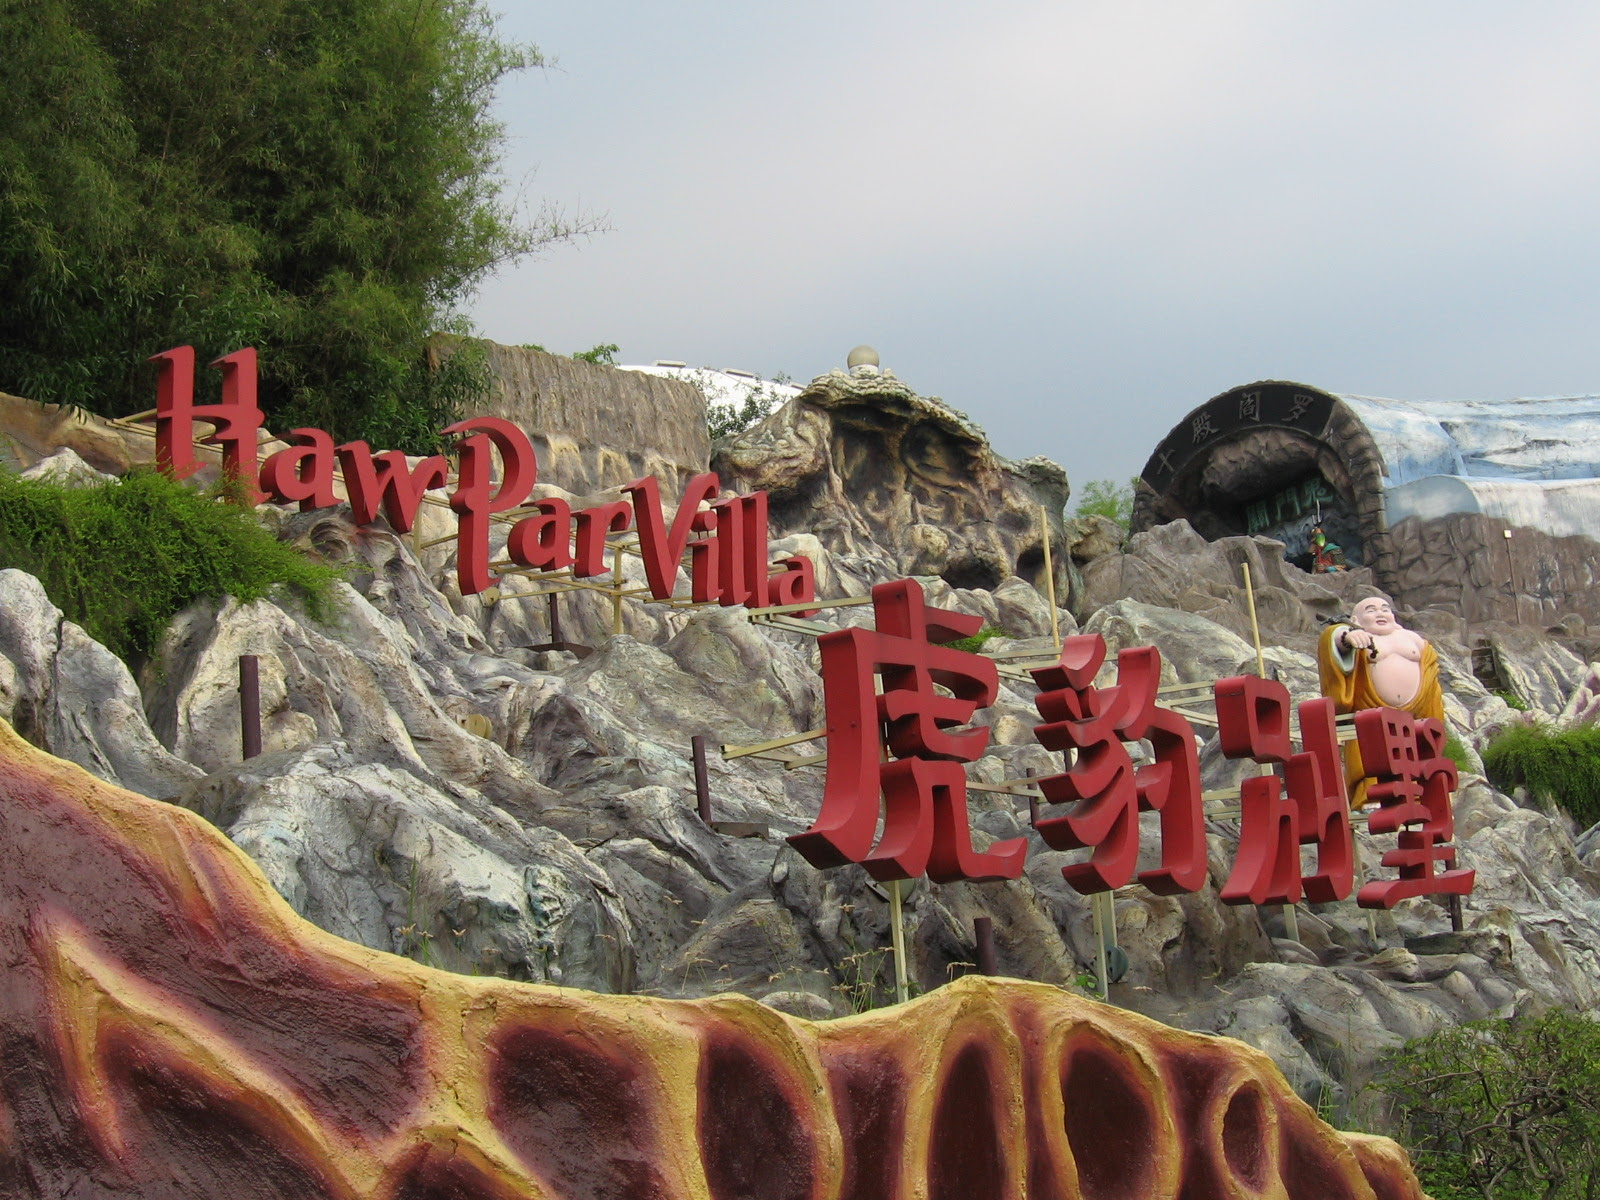 Haw Par Villa Singapore Location Map,Location Map of Haw Par Villa Singapore,The Tiger Balm Gardens,Haw Par Villa Singapore accommodation destinations attractions hotels resorts map reviews photos pictures,haw par villa tiger balm theme park korean bbq haunted 2014